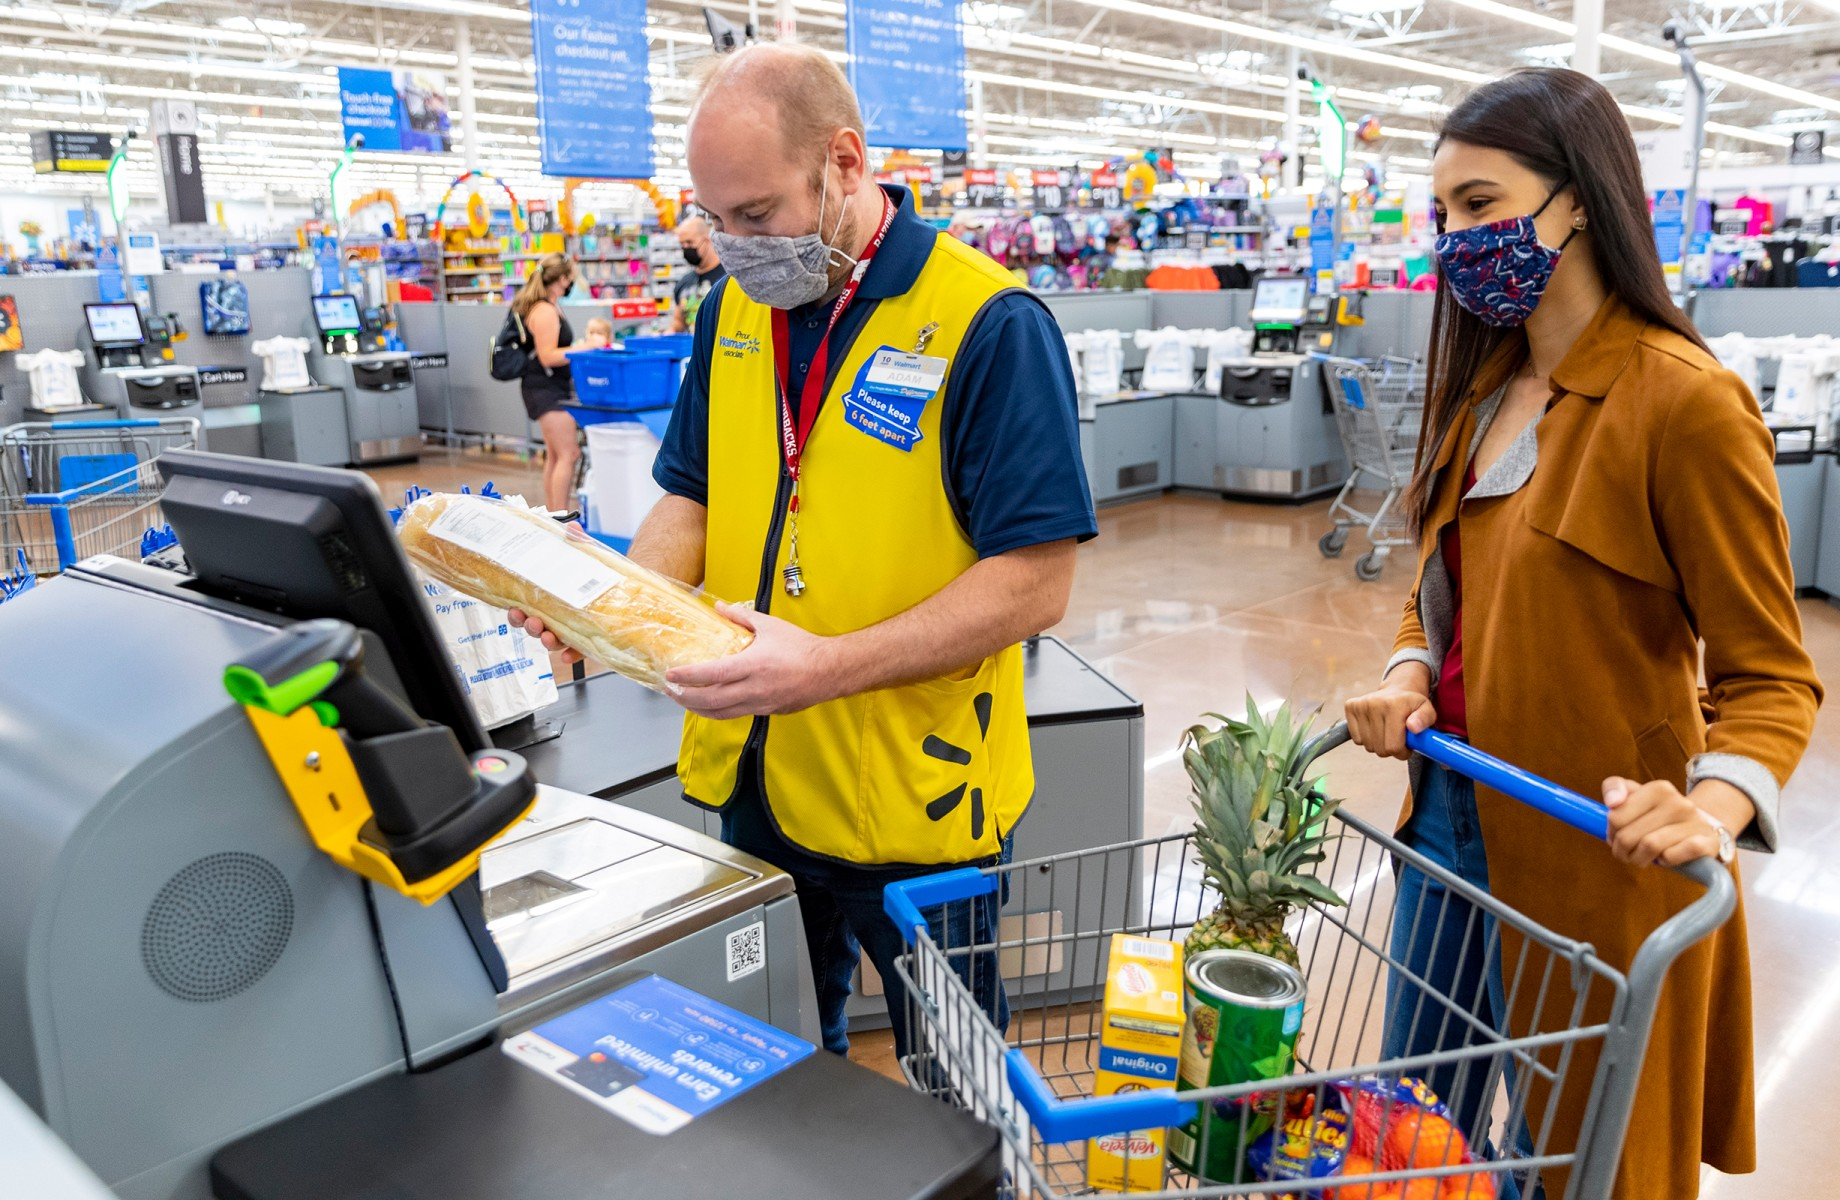 Walmart is hiring approximately 150,000 new U.S. store associates this holiday season in what the retailer says will largely be permanent and full-time at its conclusion.